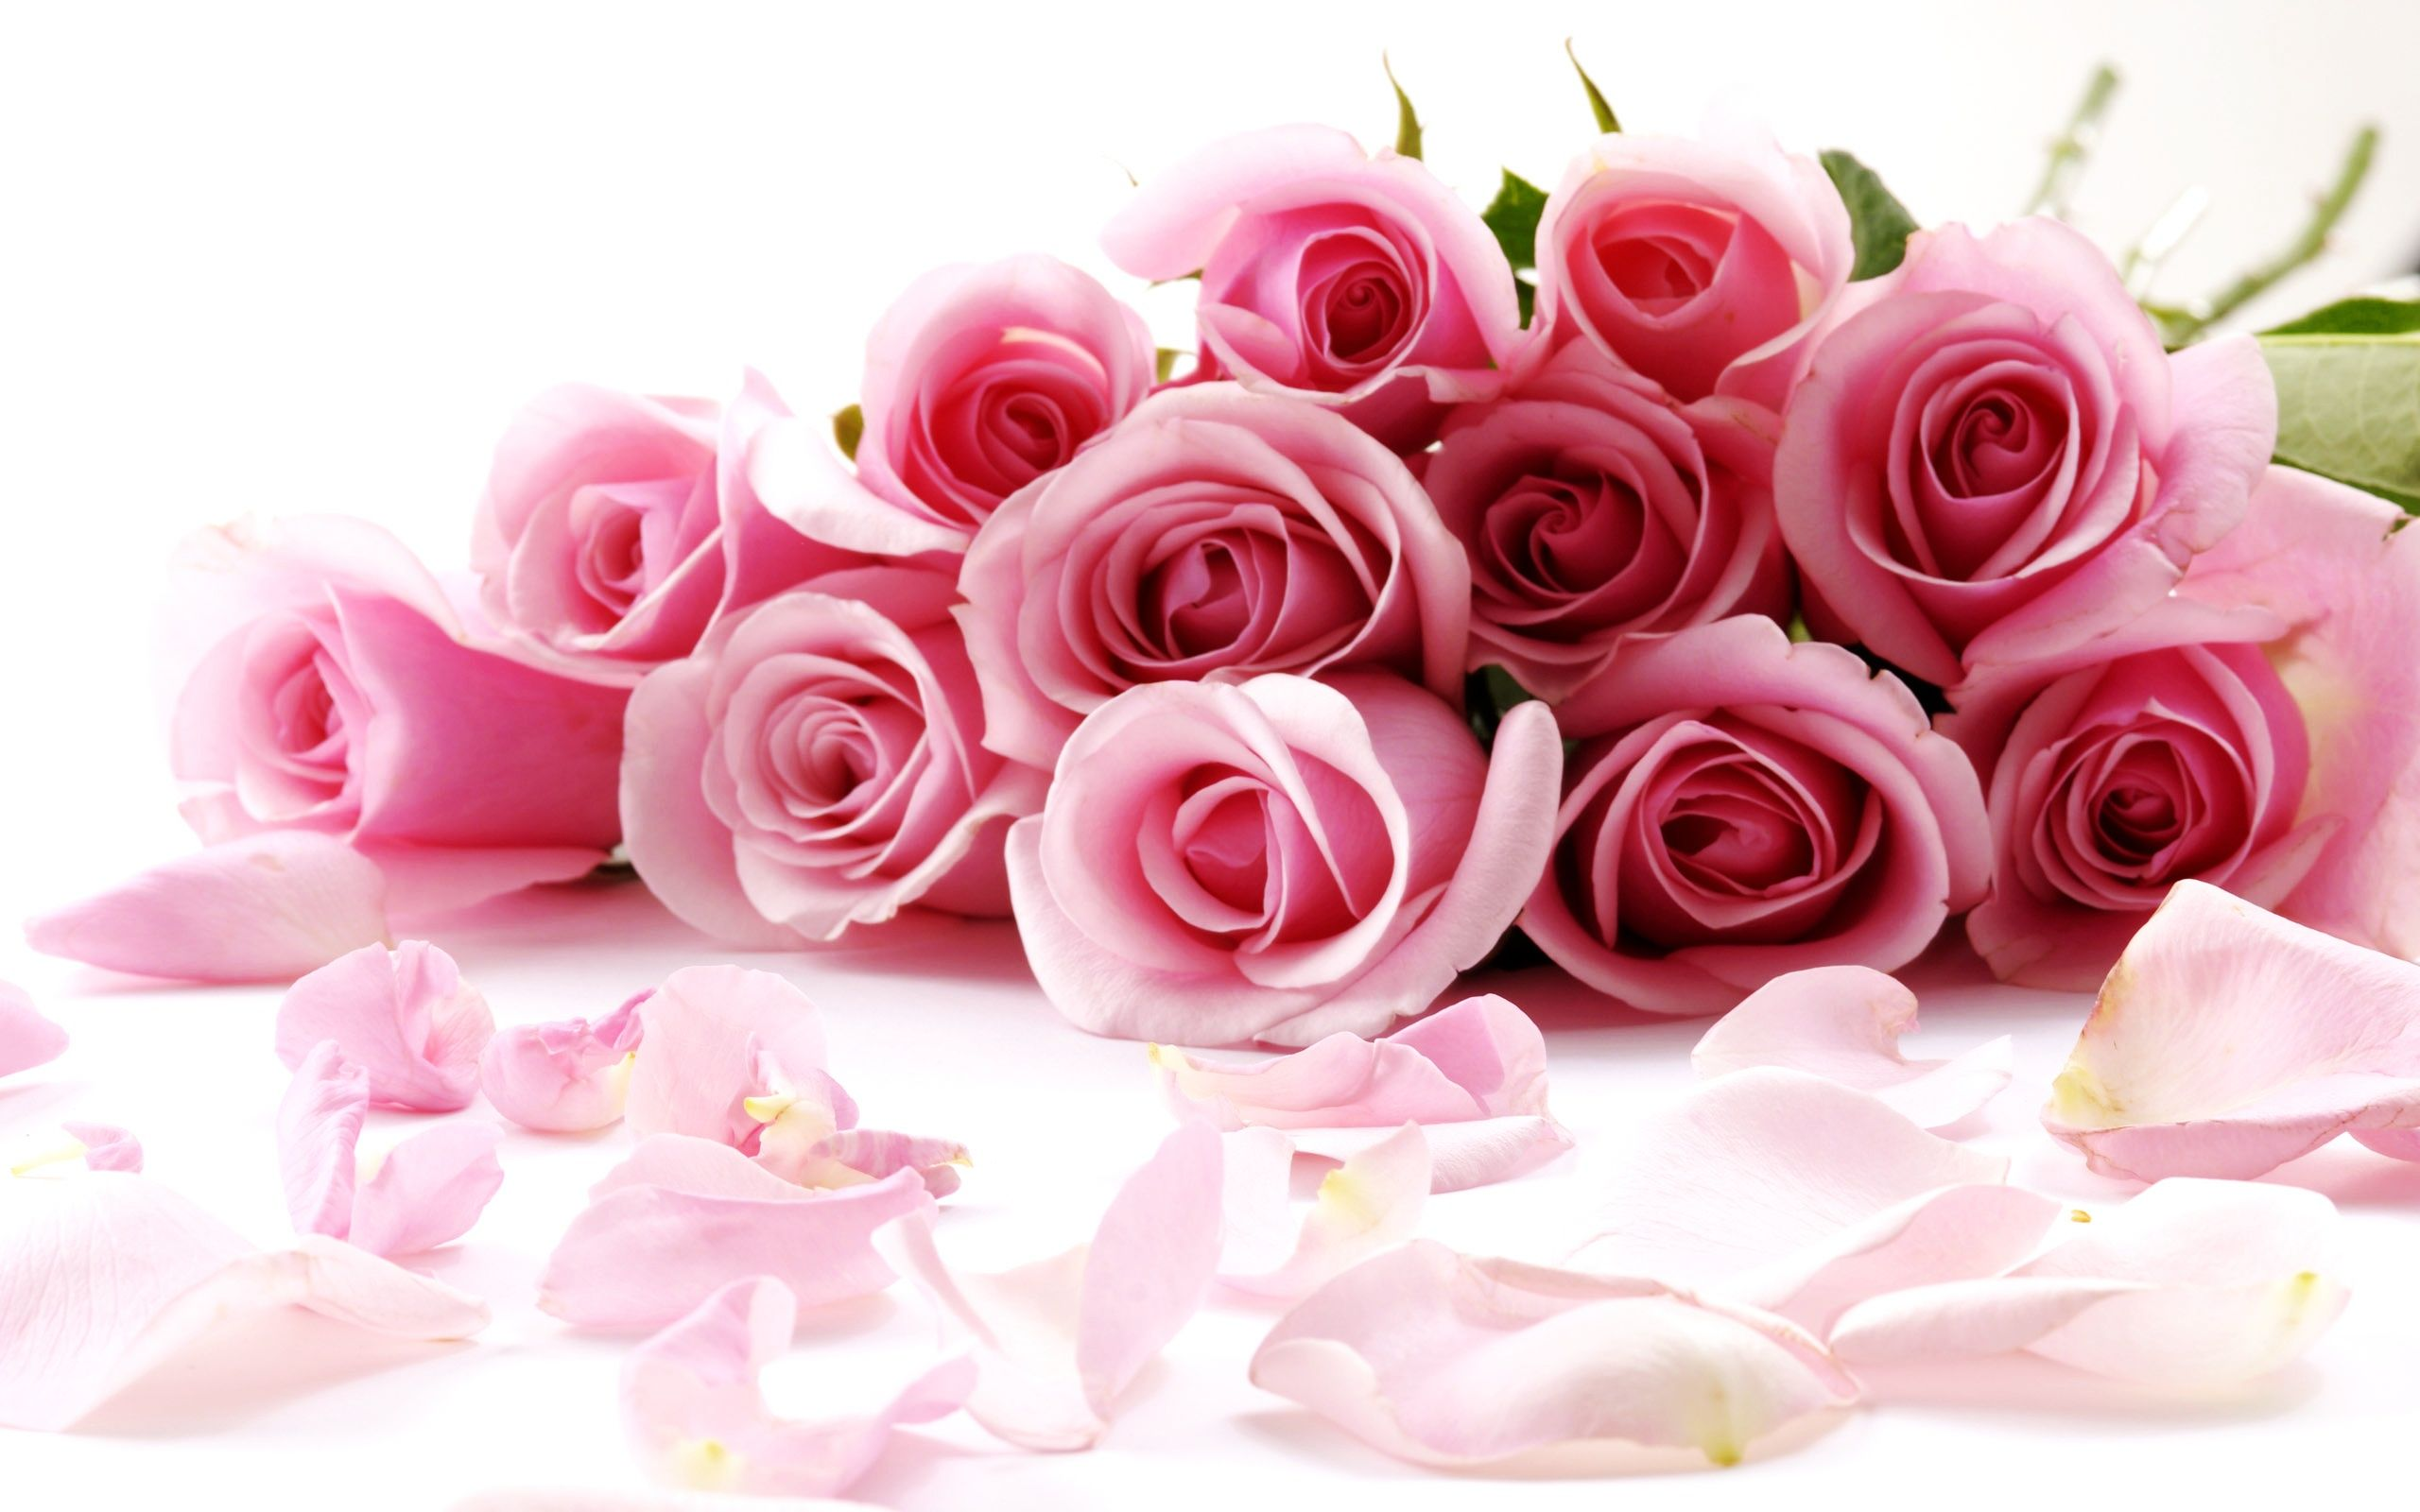 30 beautiful flower images free to download rose wallpaper rose 30 beautiful flower images free to download izmirmasajfo Image collections